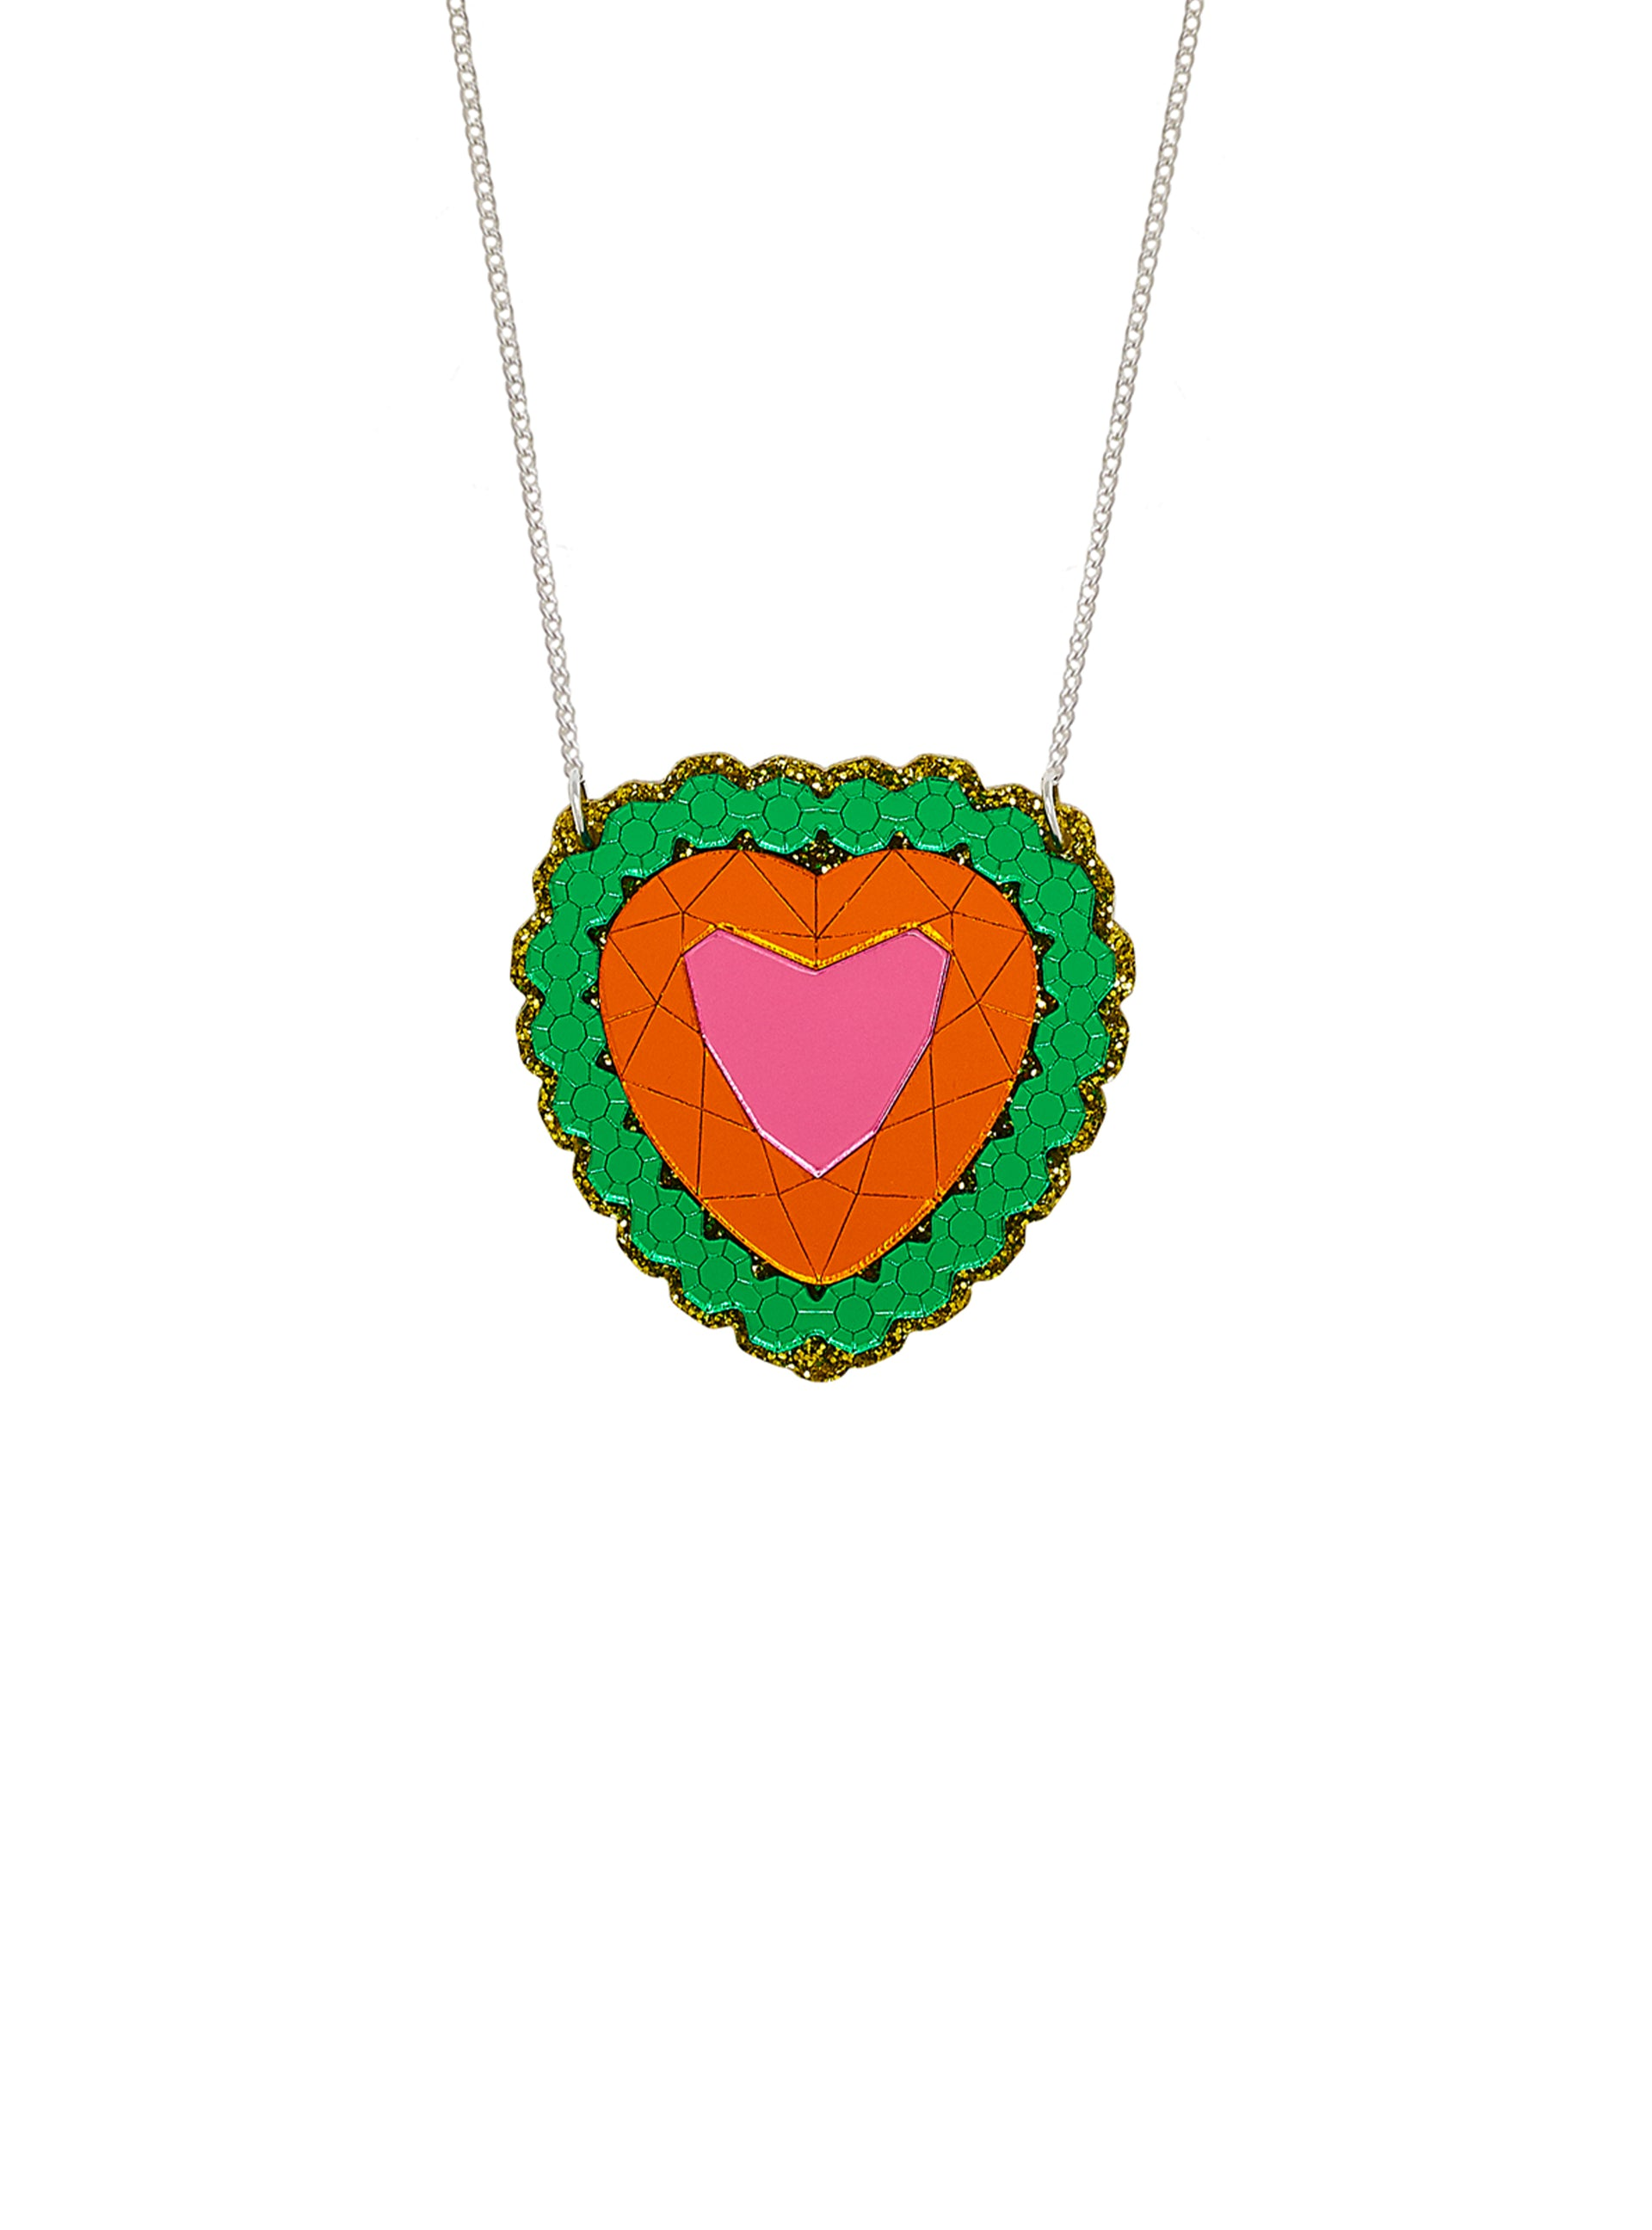 Treasure Chest Heart Necklace